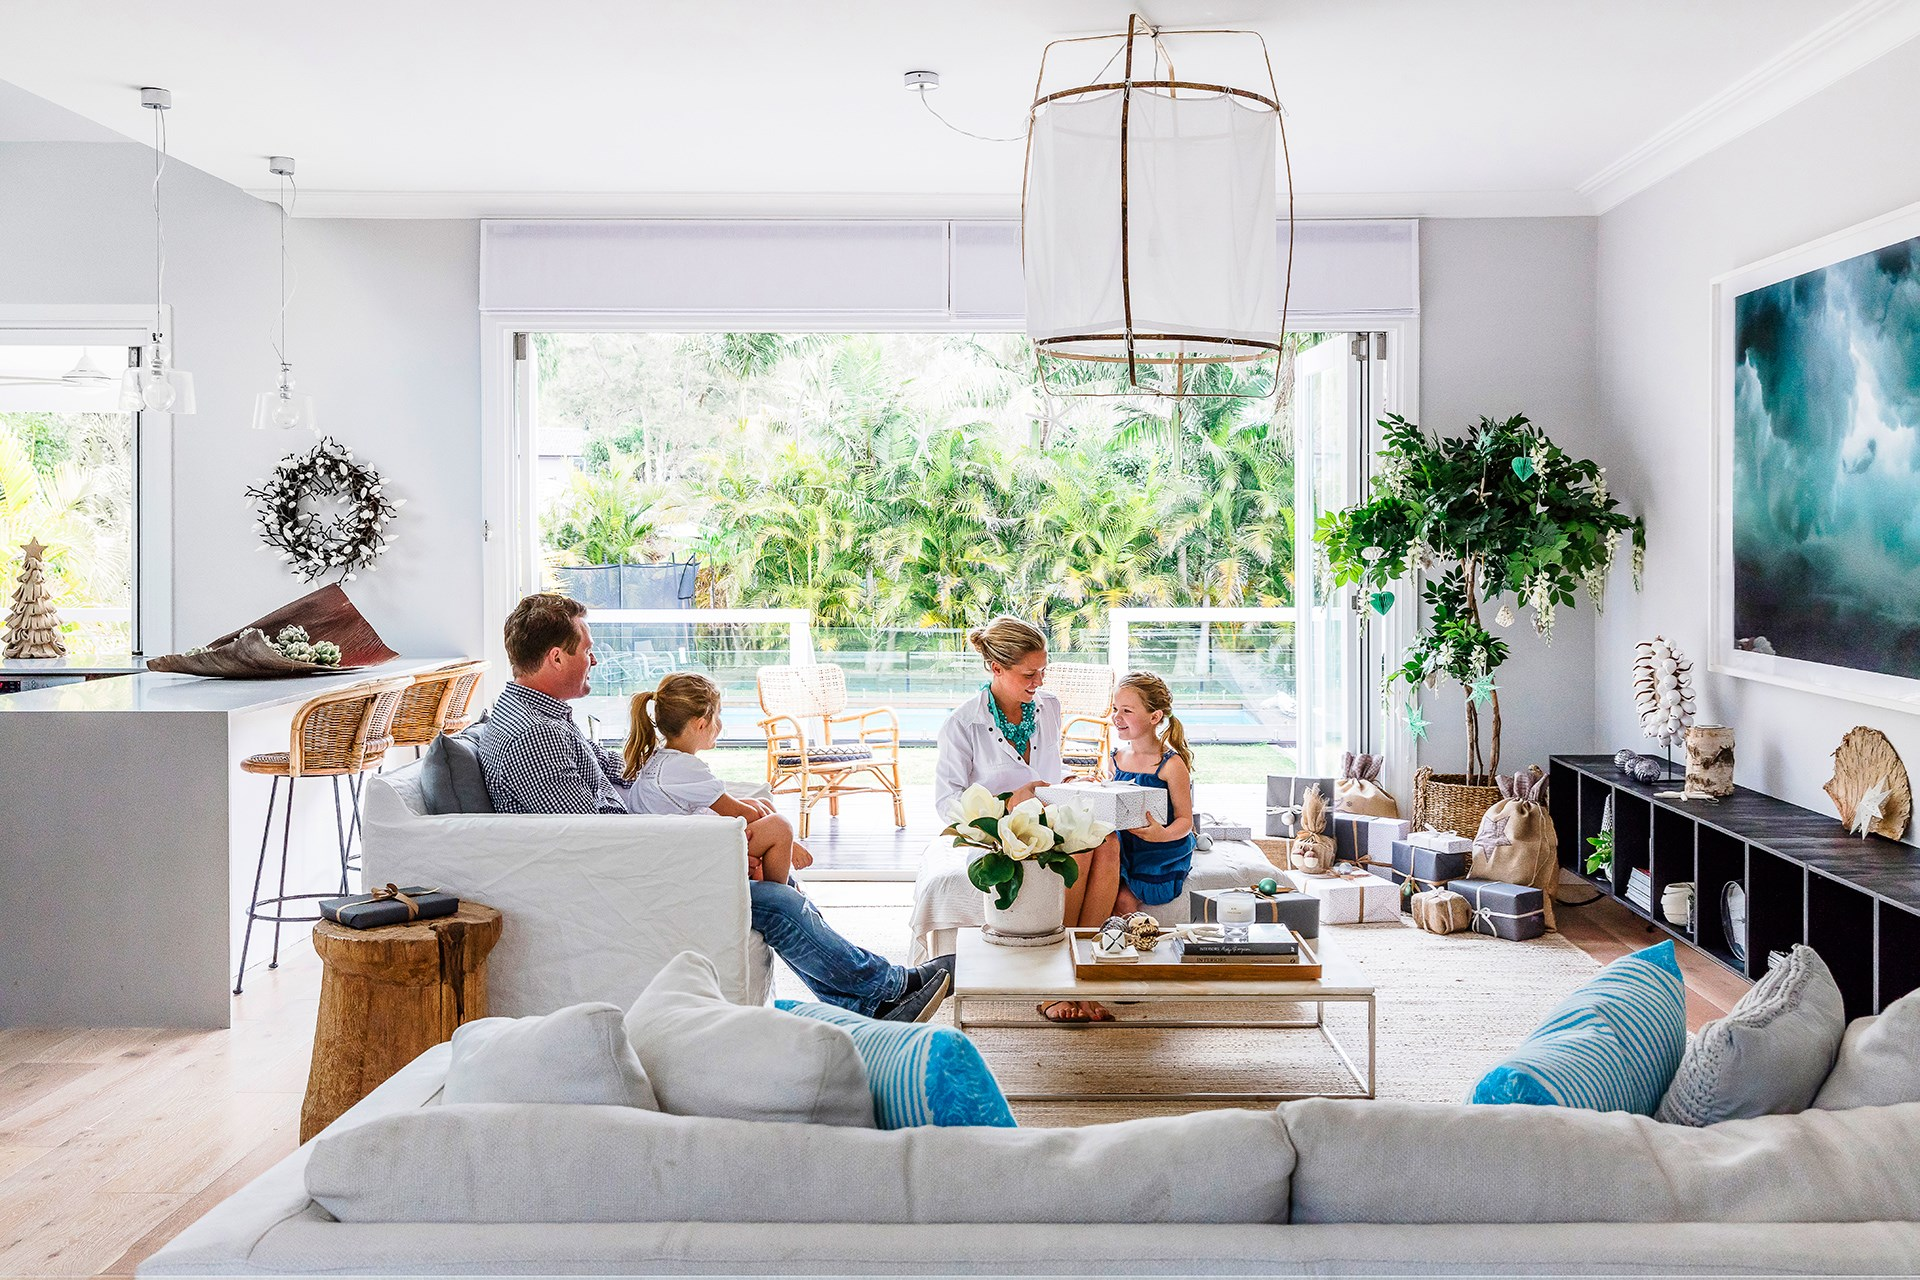 """With a little fine-tuning and a personal touch, this [Sydney beachside home](http://www.homestolove.com.au/serene-interiors-create-beach-house-bliss-2715